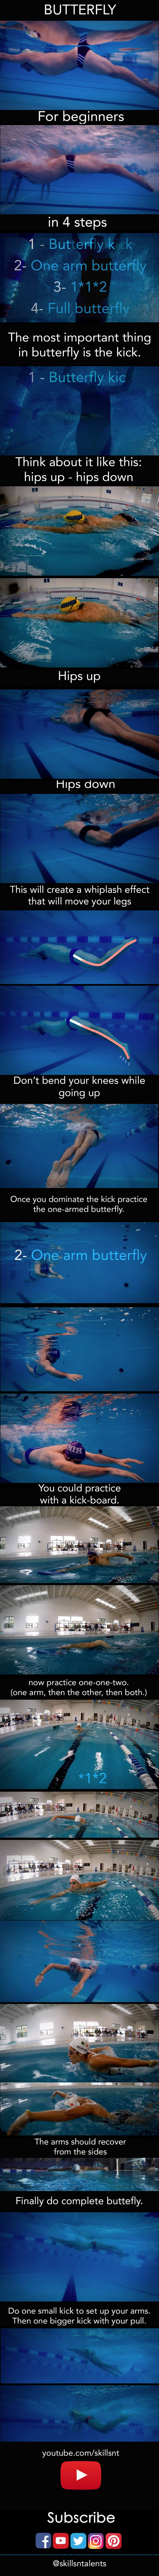 Butterfly swimming technique. How to learn swim video. Nuoto. Natacion. Shwimmen. Natation. Natacao.